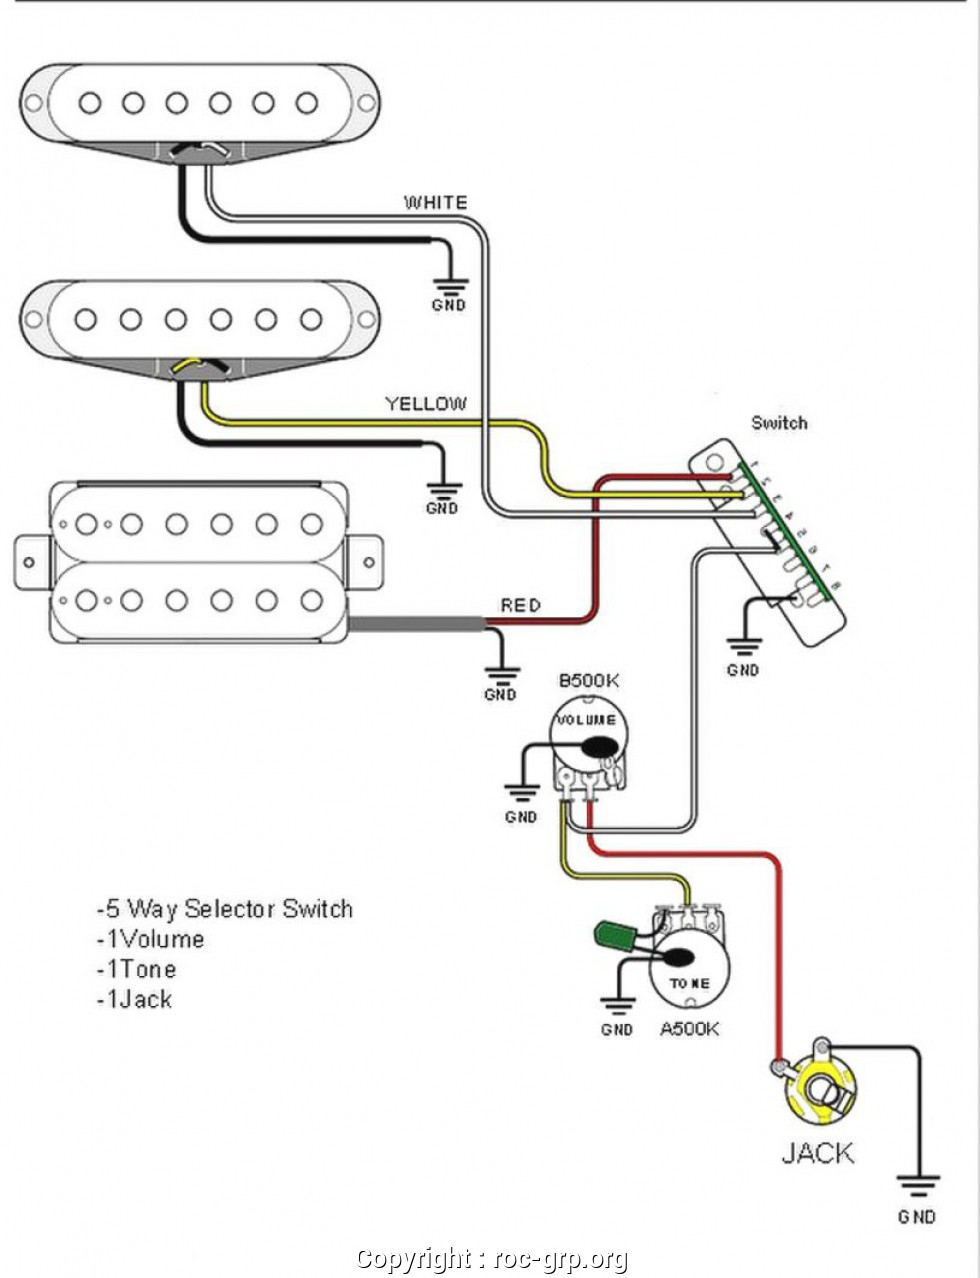 Schaller 5 Way Switch Wiring Diagram | Wiring Diagram - 5 Way Switch Wiring Diagram